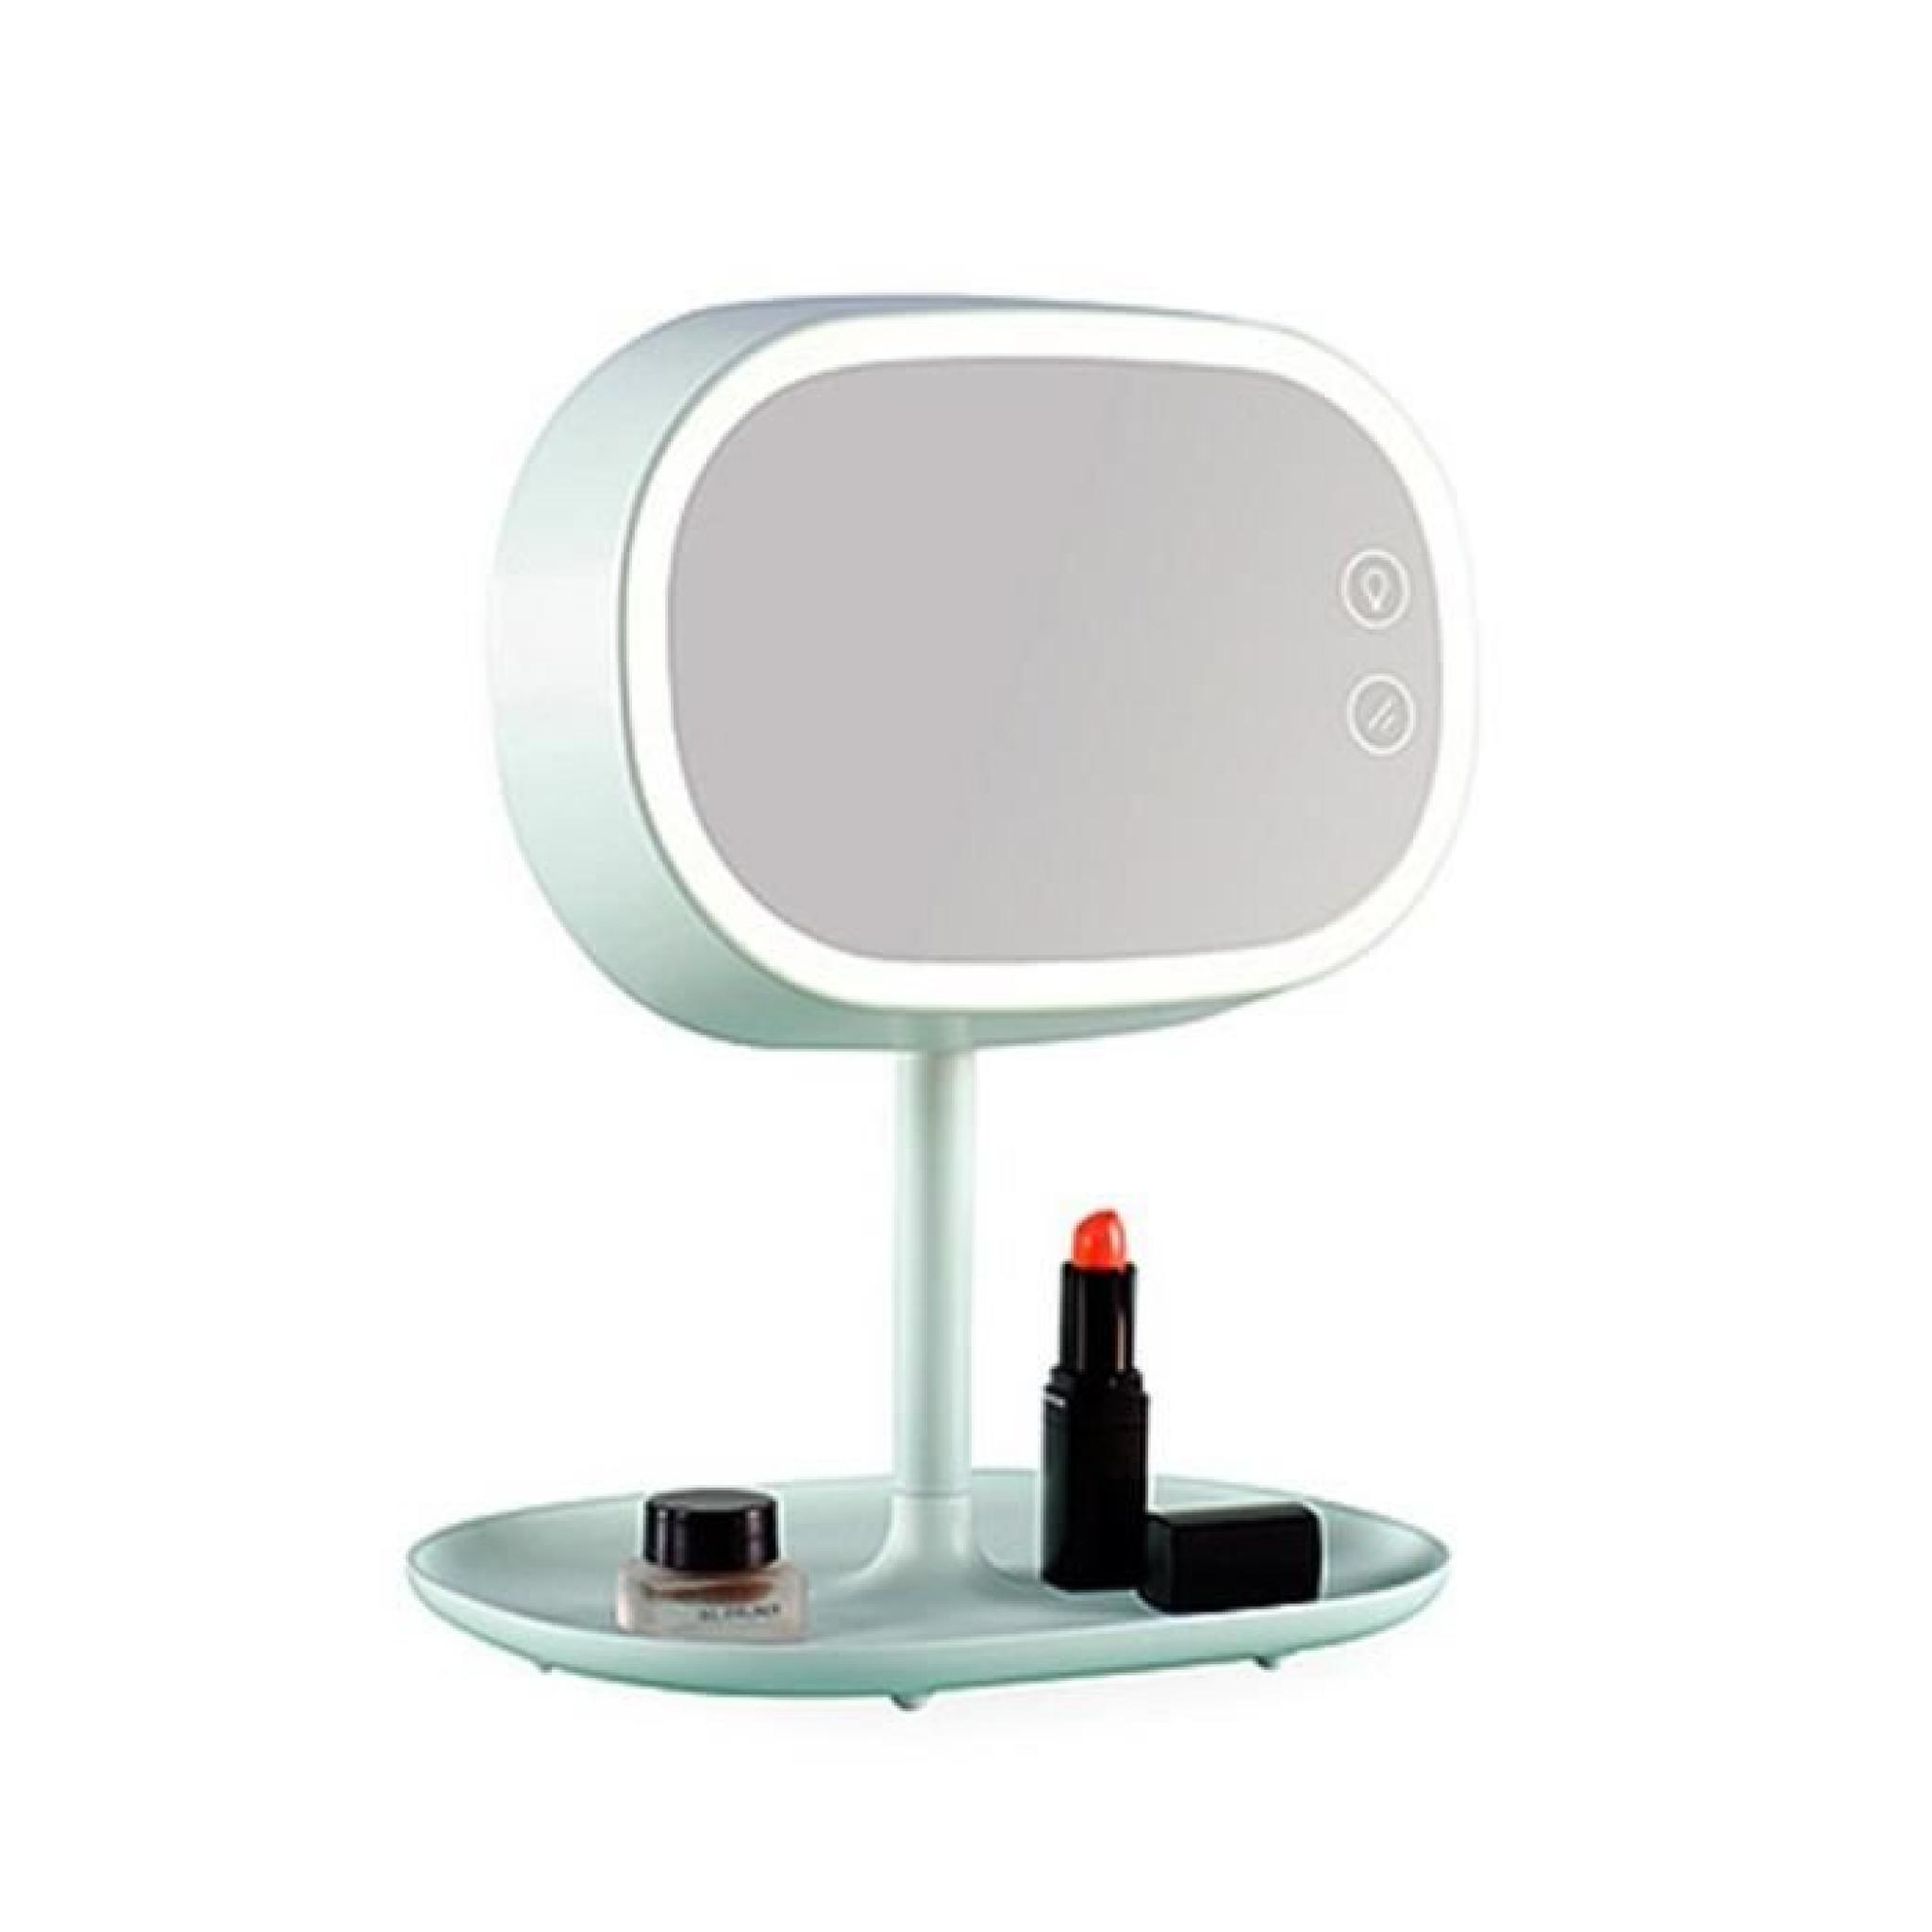 Miroir Maquillage Pas Cher Ifunmore Smart Touch Control Maquillage Miroir Table Lampe